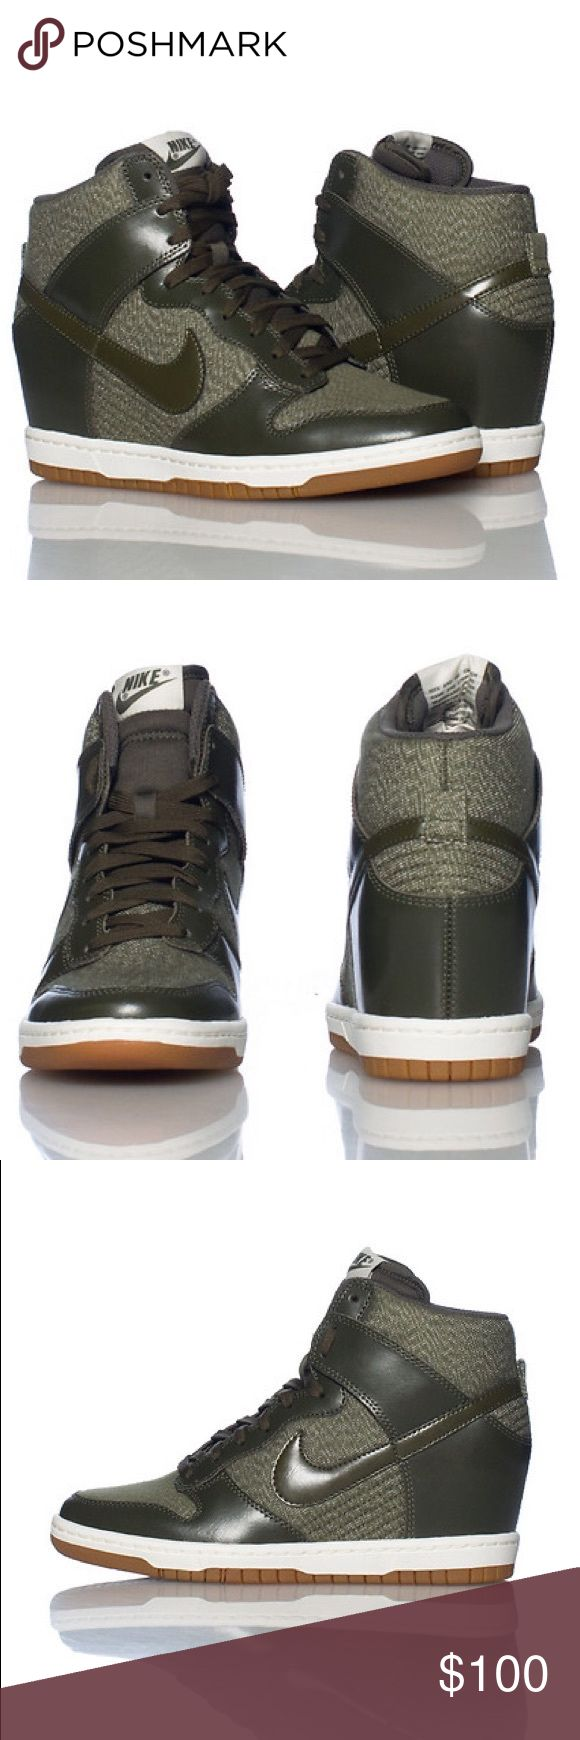 NIKE Dunk Sky Hi Essential Wedge Sneaker New Without box, only tried on and worn indoors High top women's wedge sneaker  Lace up closure  Mesh for breathability  Padded tongue with NIKE logo  Cushioned inner sole  Greyish khaki color Nike Shoes Sneakers